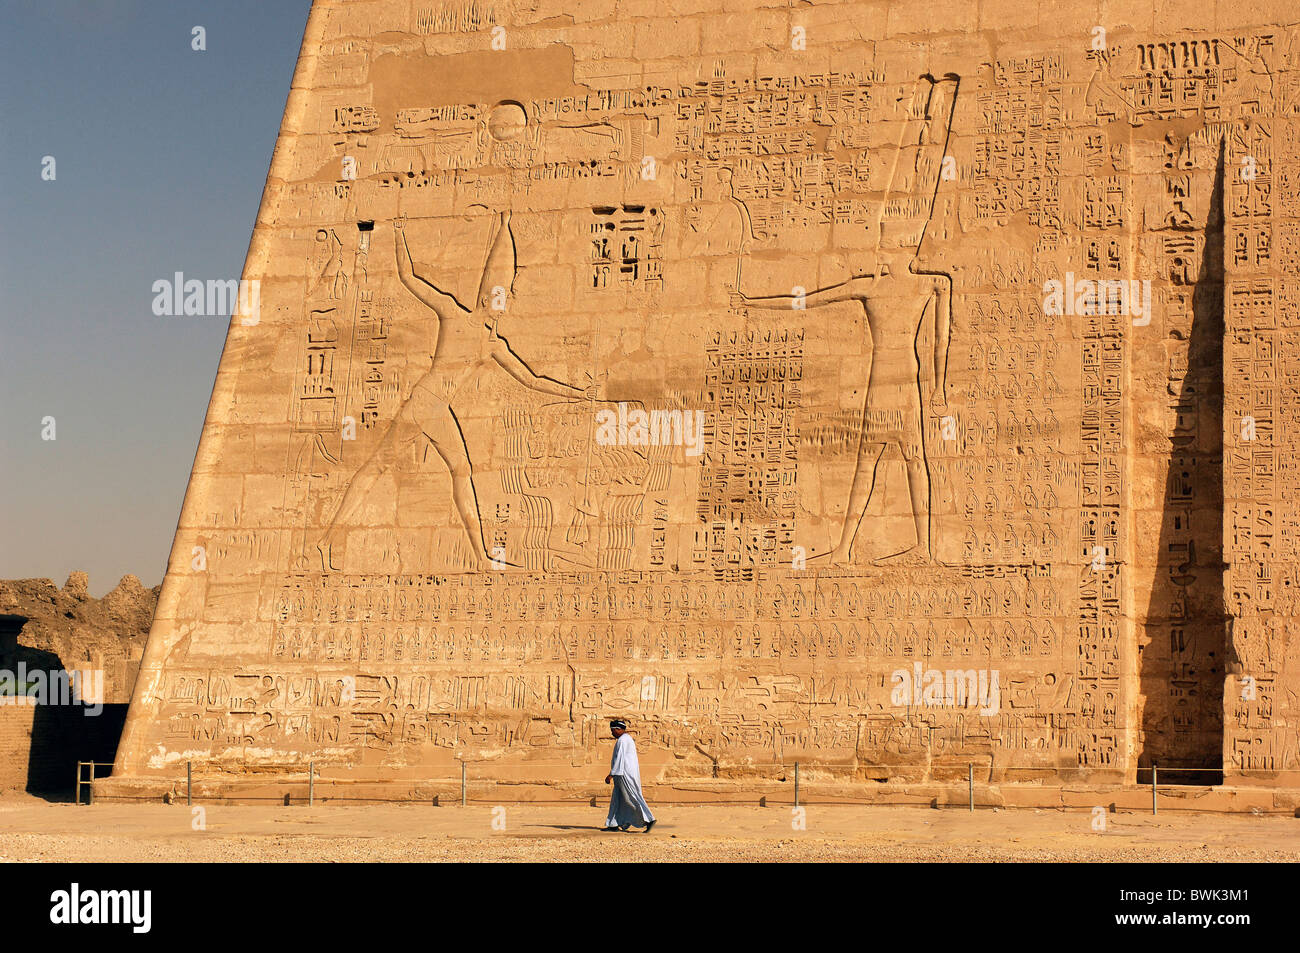 funerary temples Ramses III Medinet Habu temple Thebes west Luxor Egypt North Africa - Stock Image